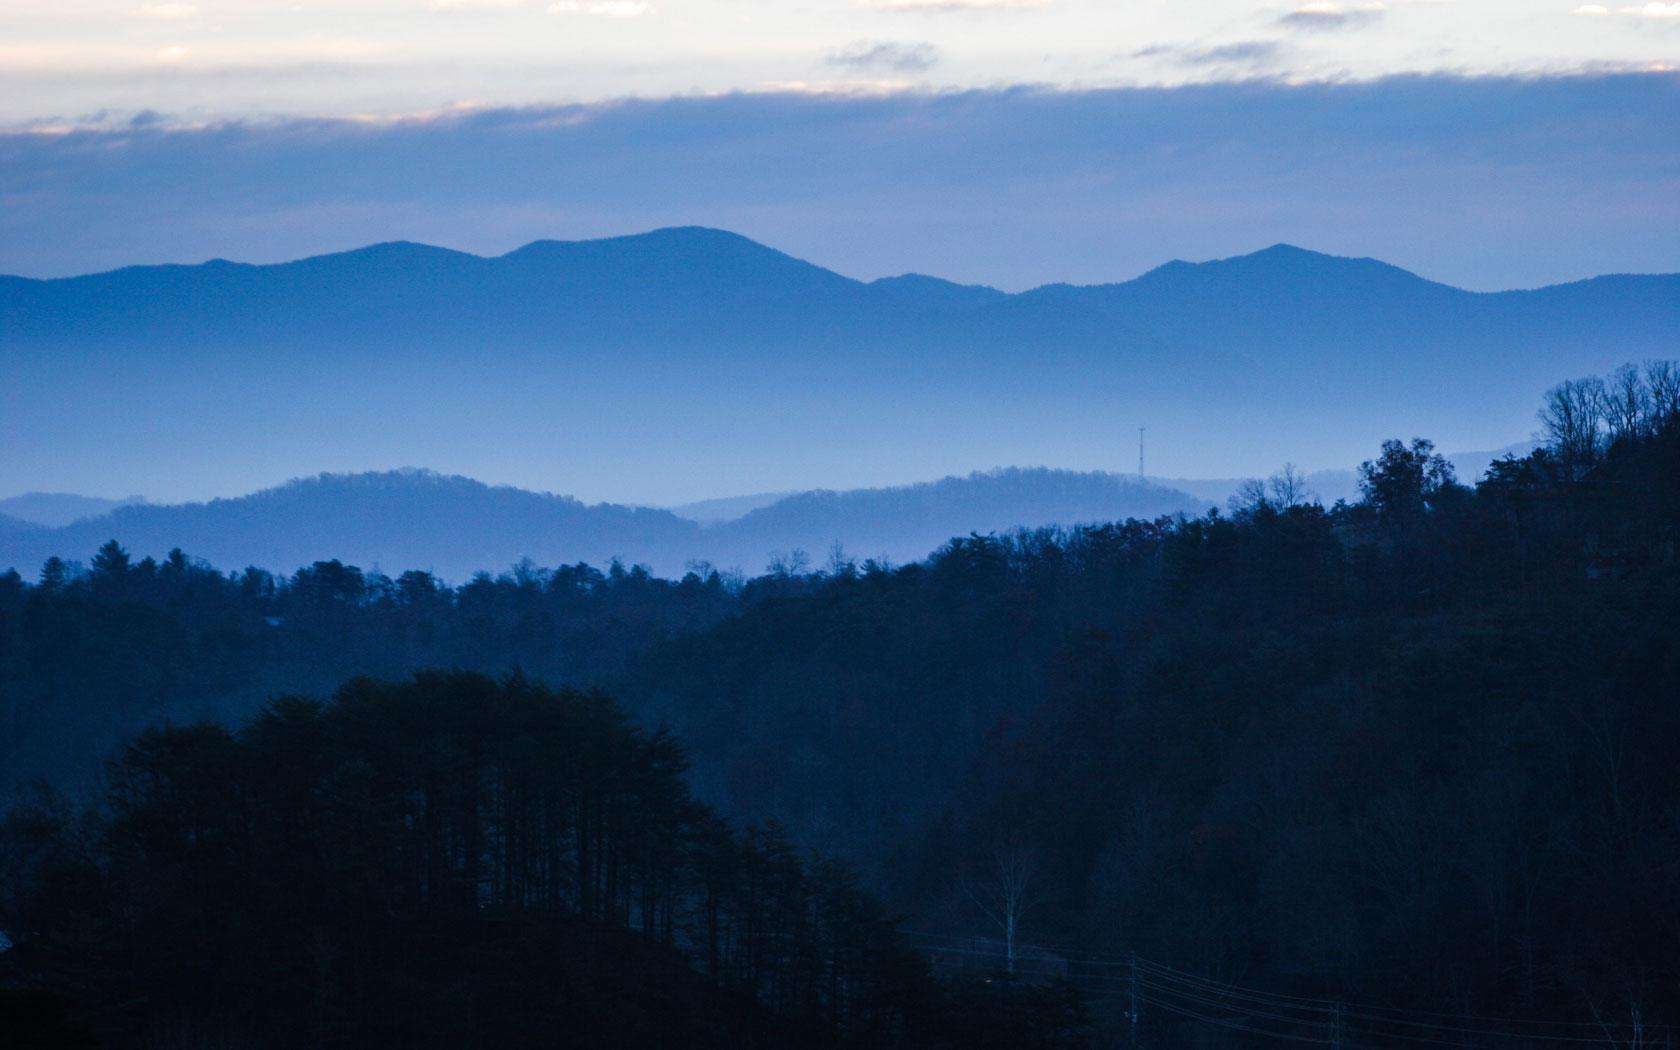 The Great Smoky Mountains with a blue haze.